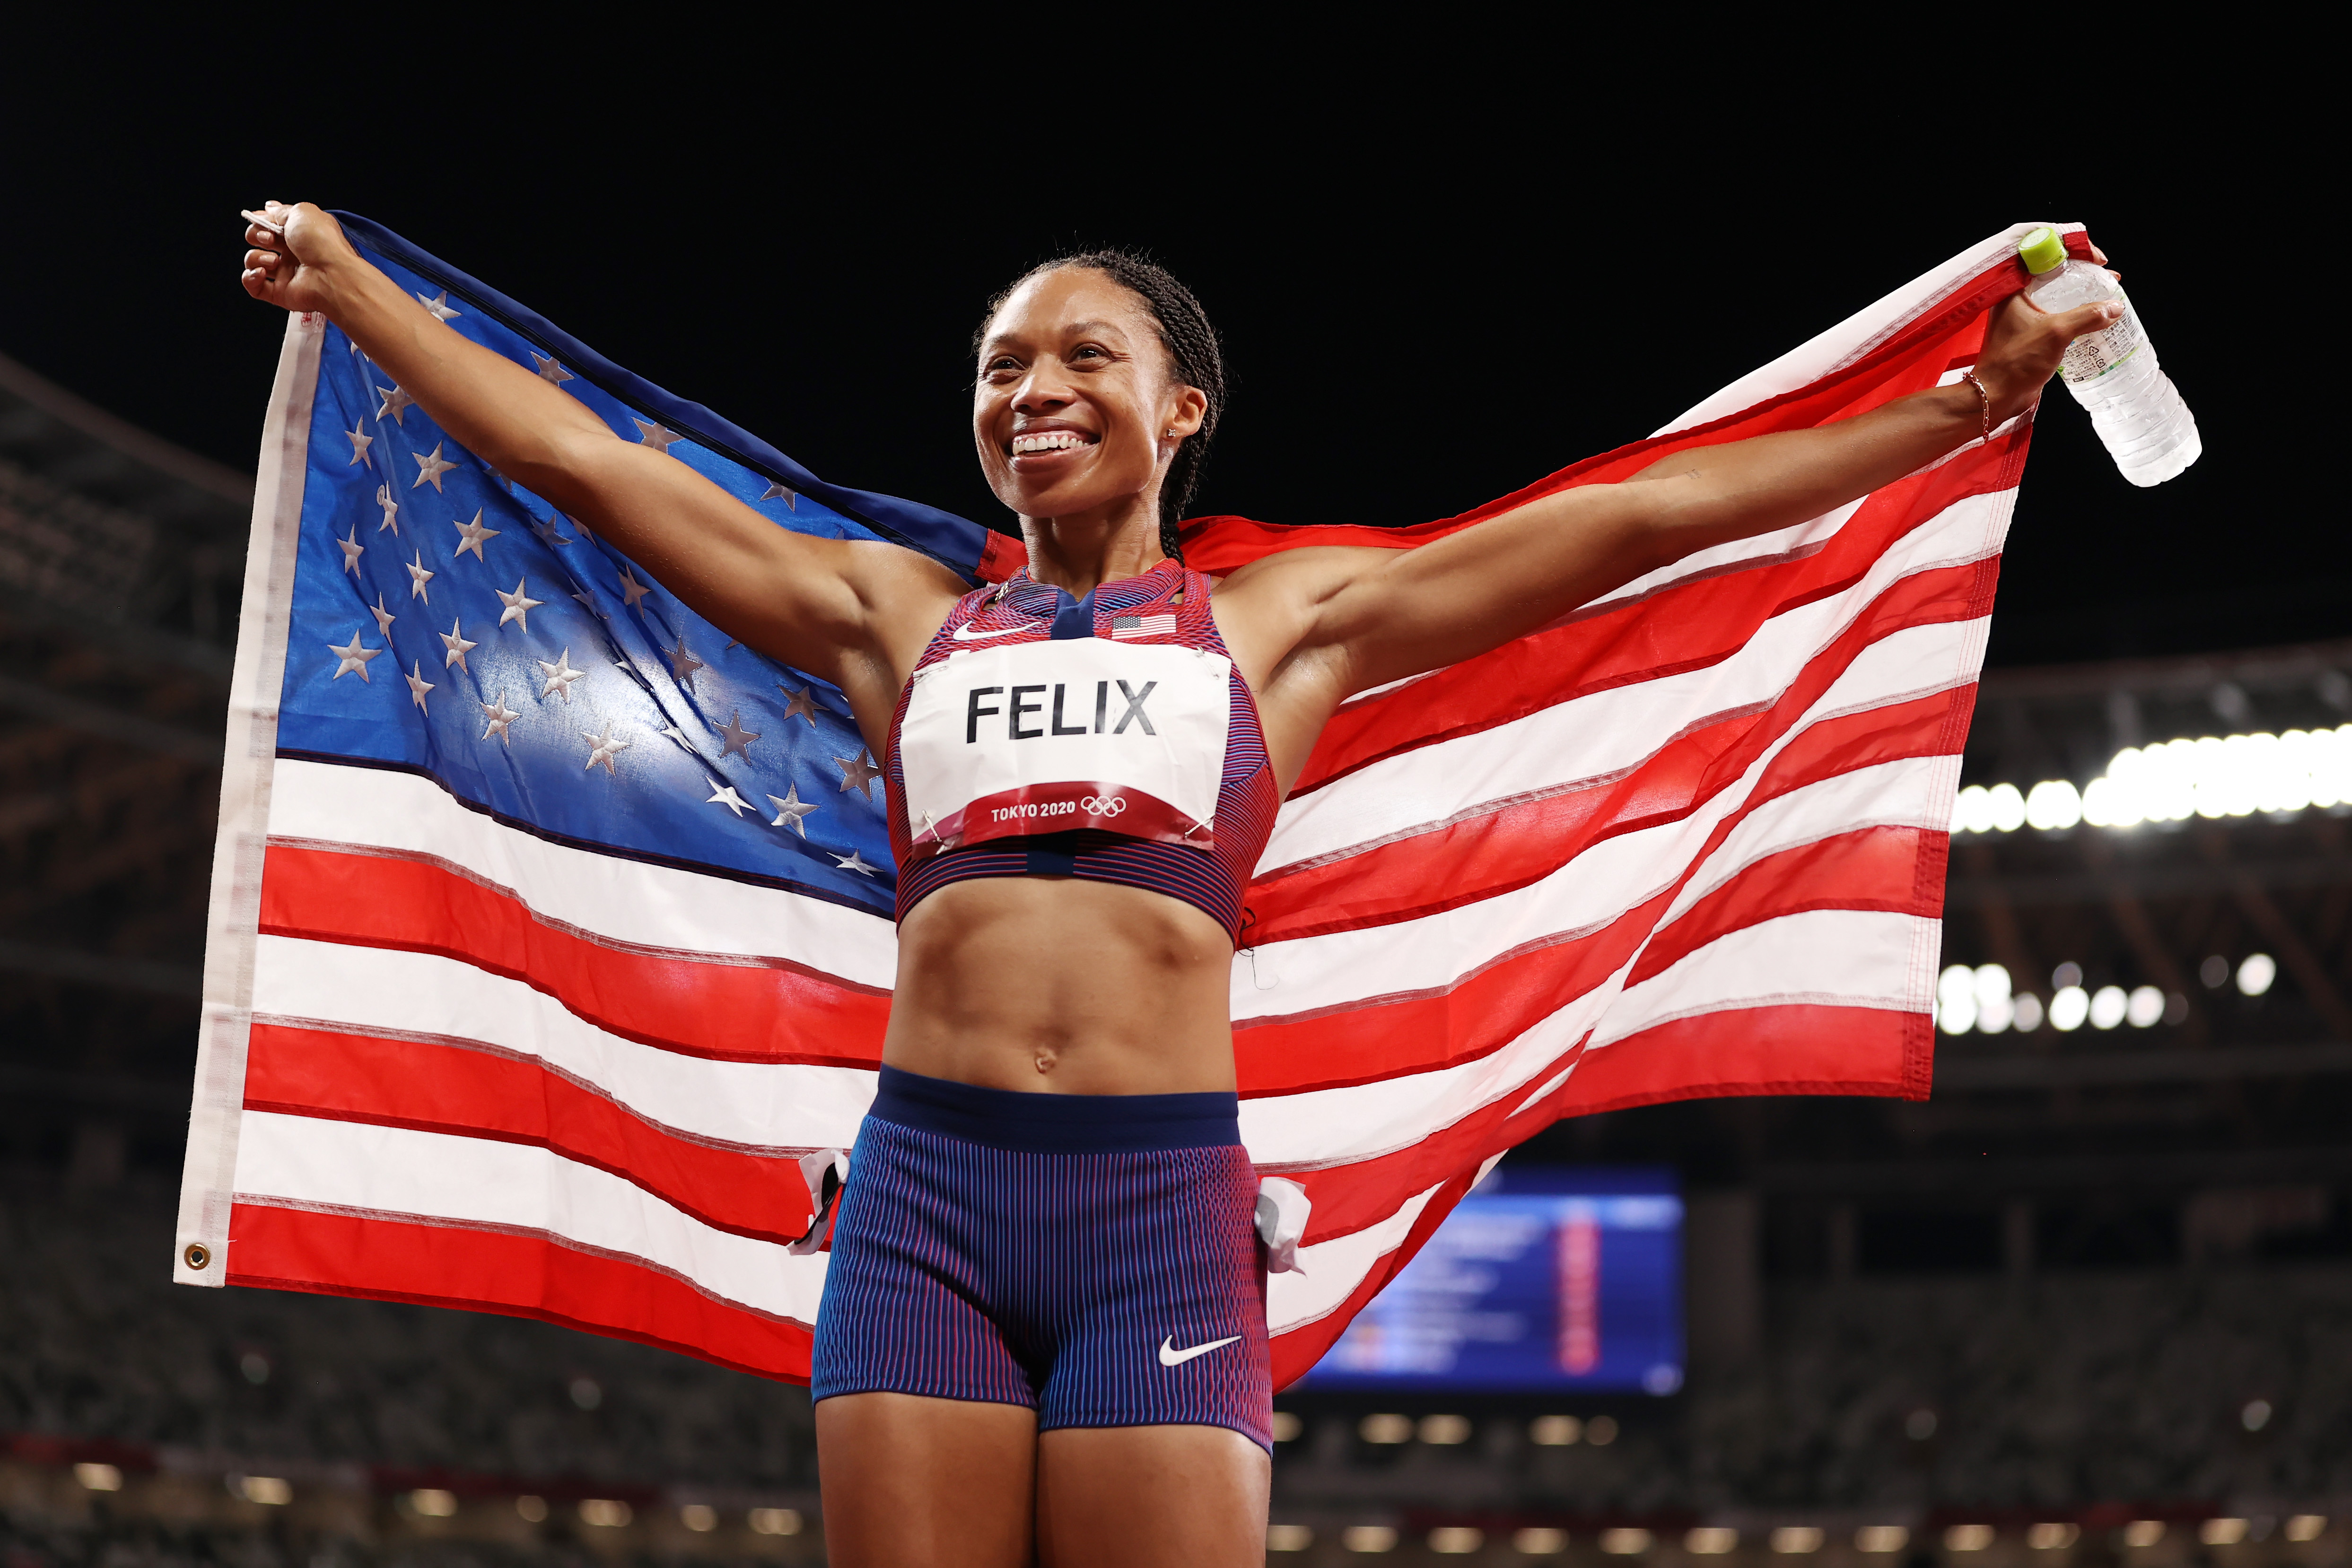 Allyson Felix of Team USA reacts after winning the bronze medal in the Women's 400m Final on day fourteen of the Tokyo 2020 Olympic Games at Olympic Stadium on August 06, 2021 in Tokyo, Japan.